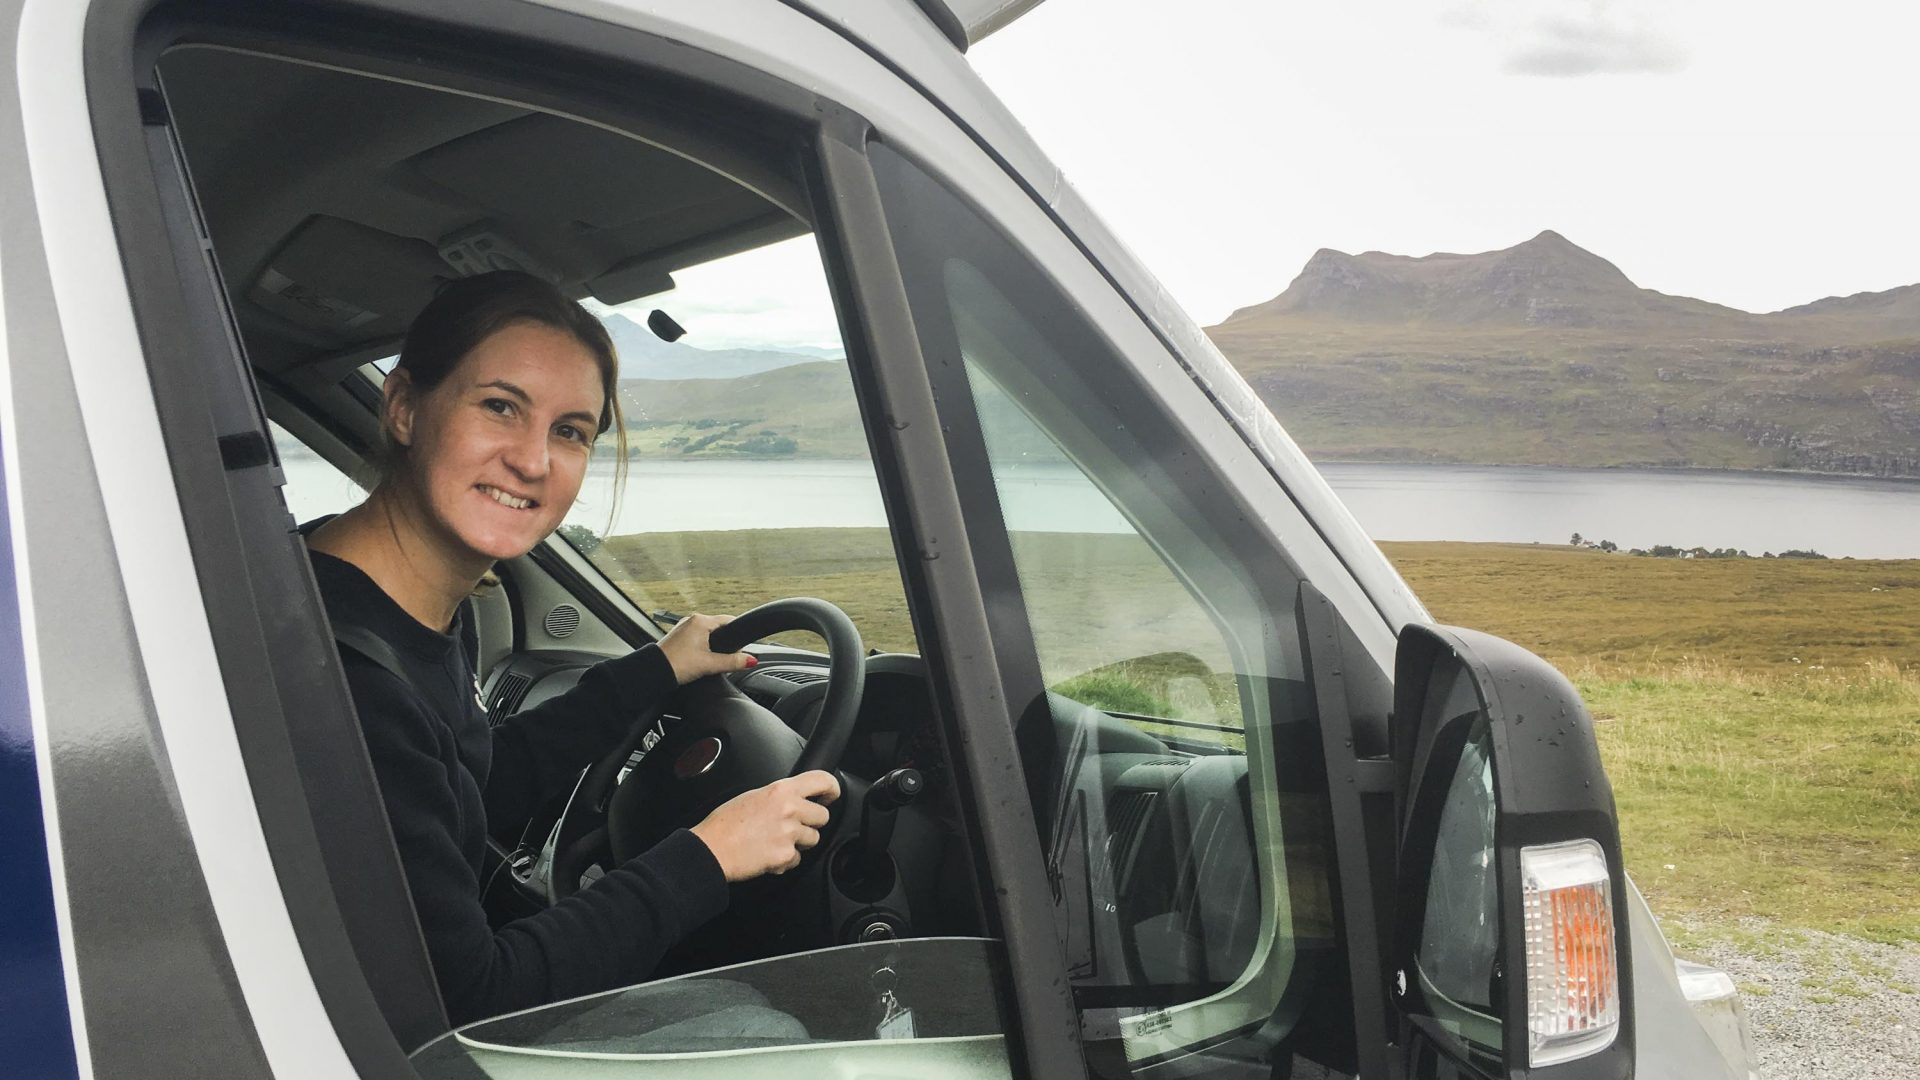 Helen Ochyra behind the wheel of a campervan near Stac Pollaidh in the northwest Highlands.